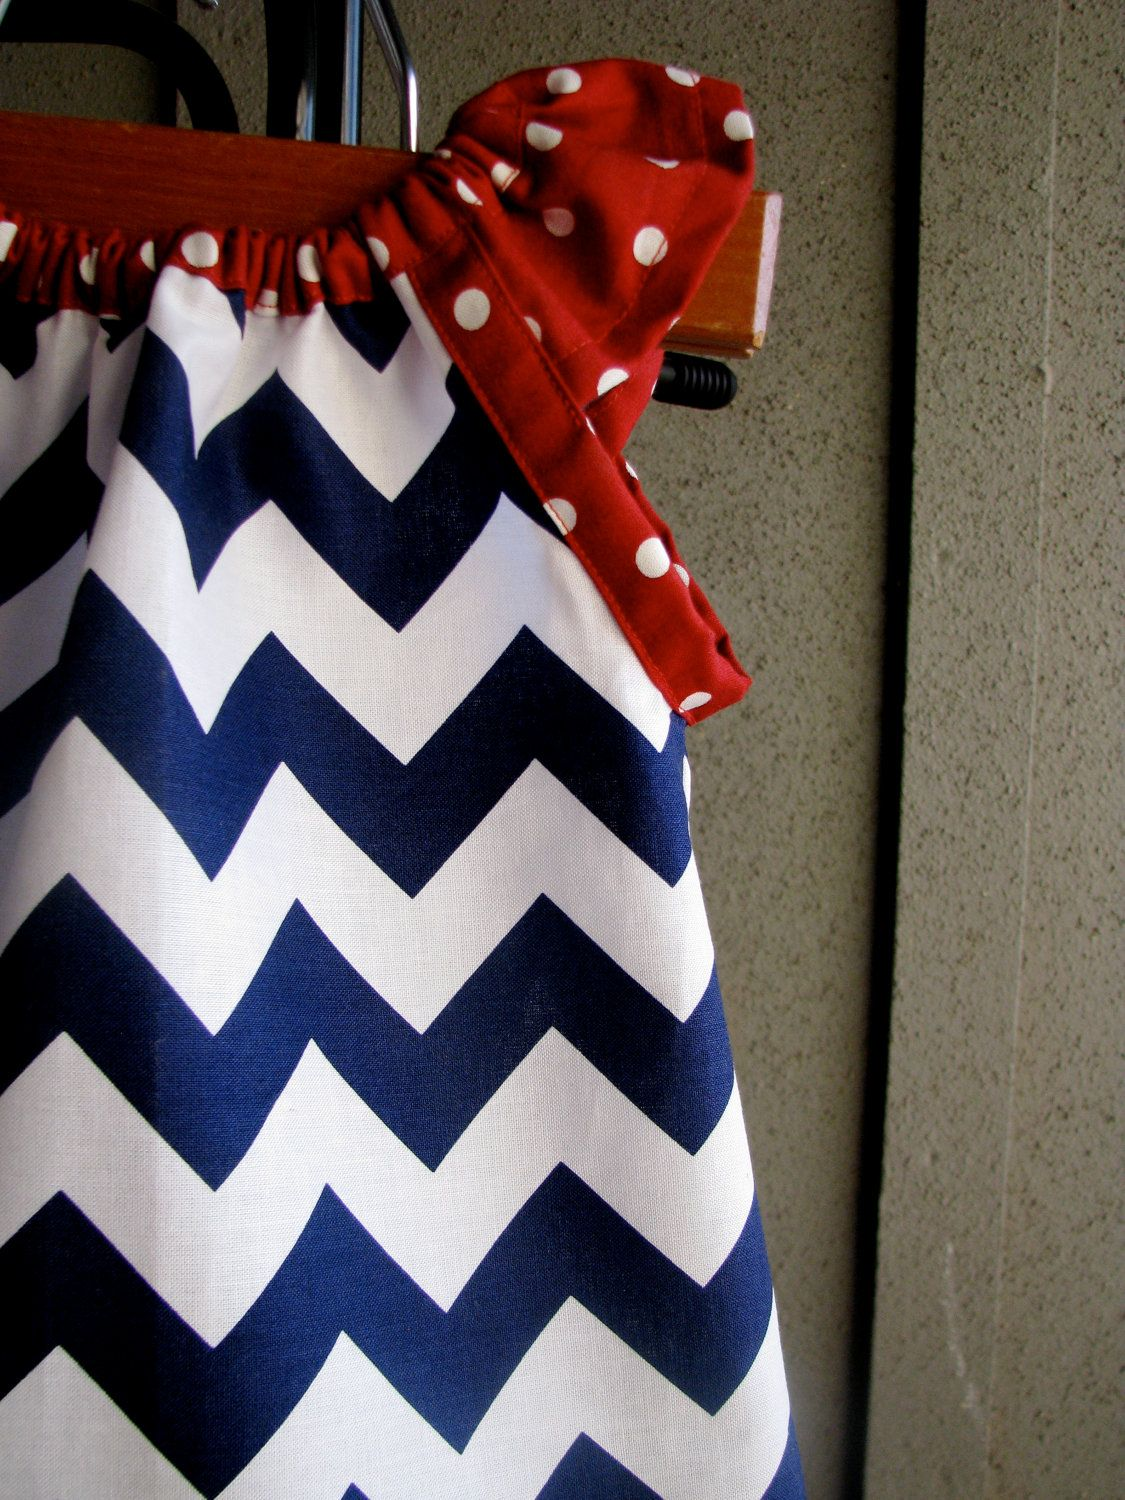 Dress Chevron Zigzag Navy Red White Blue Girl Baby Toddler 0 3 Months 3 6 6 12 12 18 18 24 2t 3t Girl Outfits Toddler Girl Outfits Little Girl Dresses [ 1500 x 1125 Pixel ]